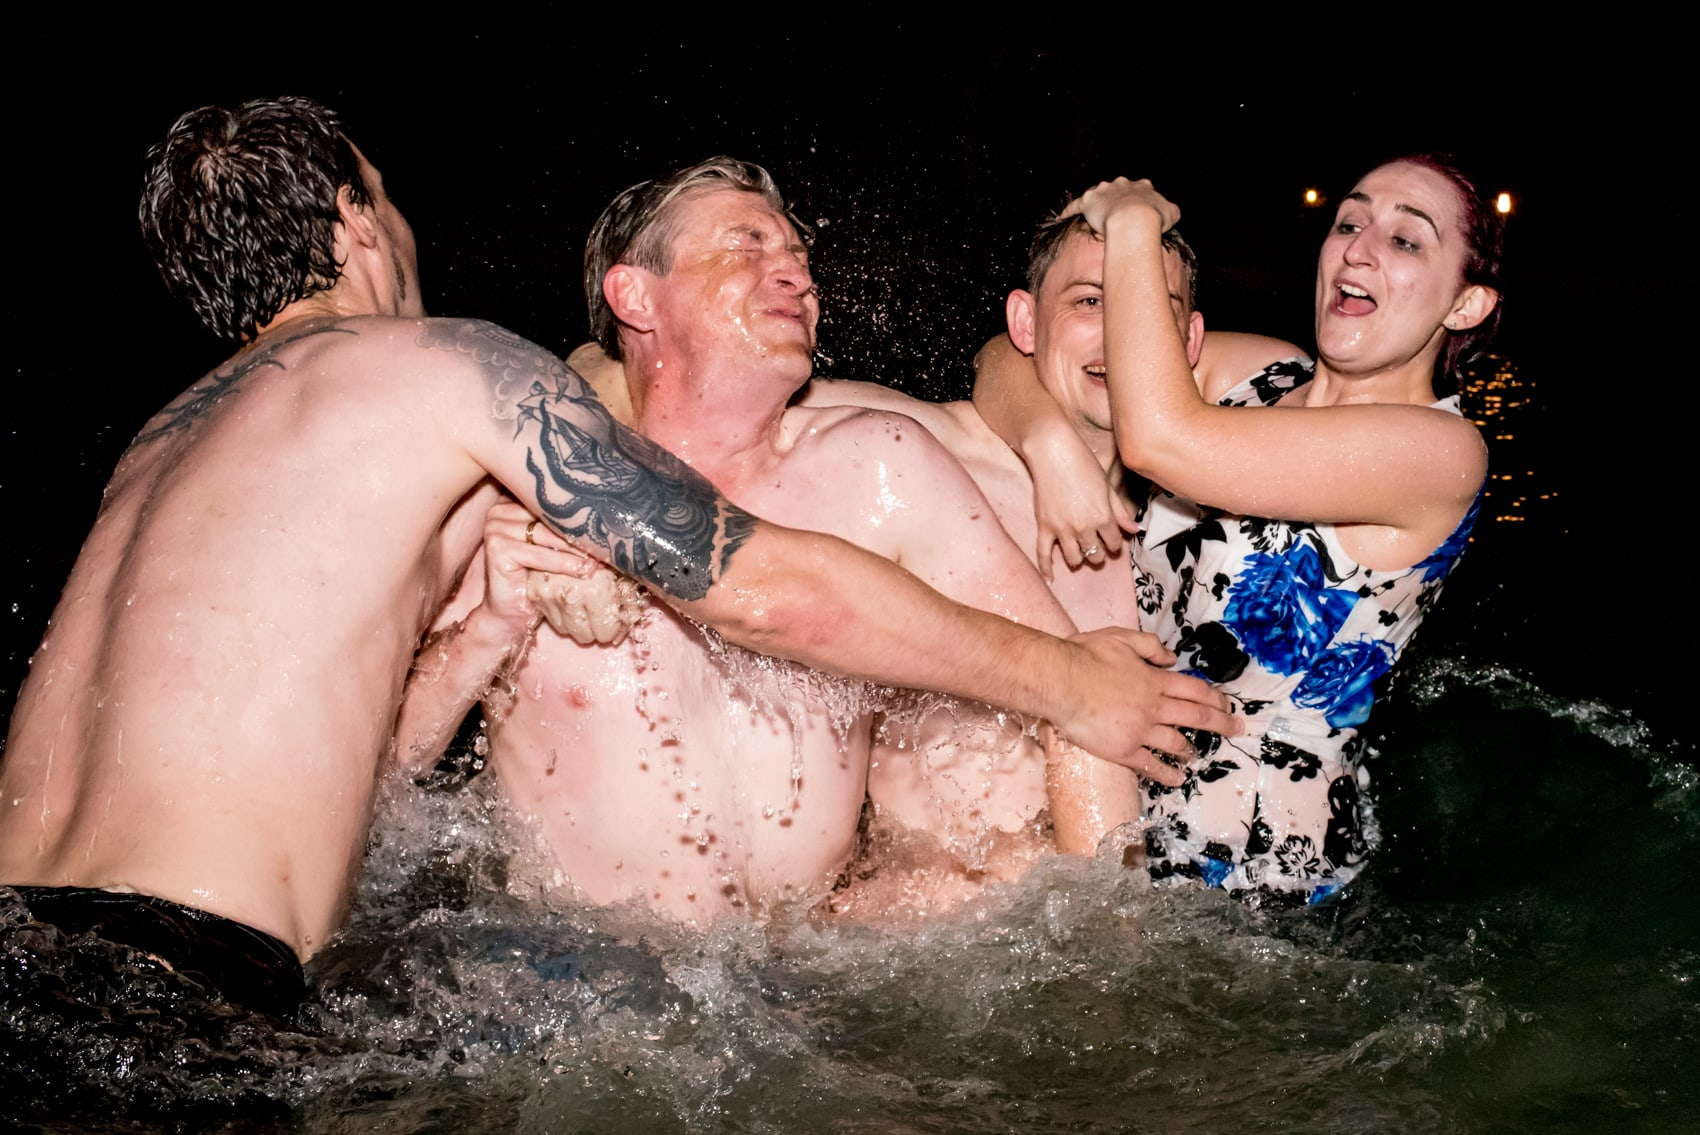 night time fun with guests playing in the lake at a wedding